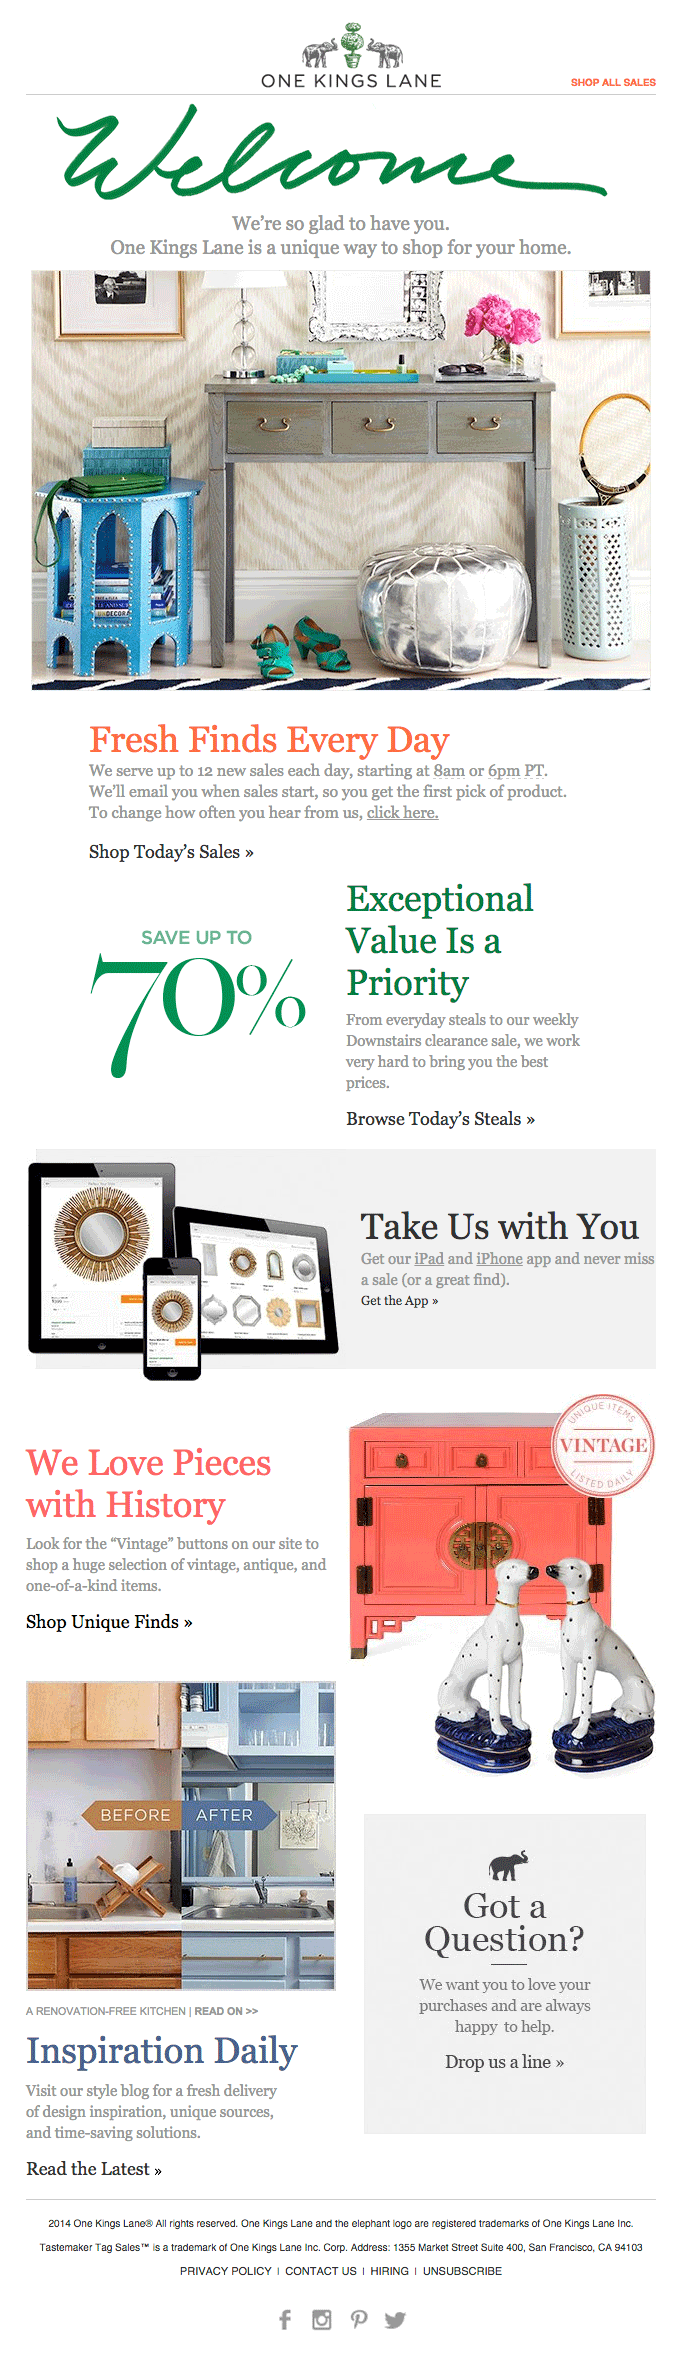 one-kings-lane-fashion-ecommerce-email-marketing-examples-smaller